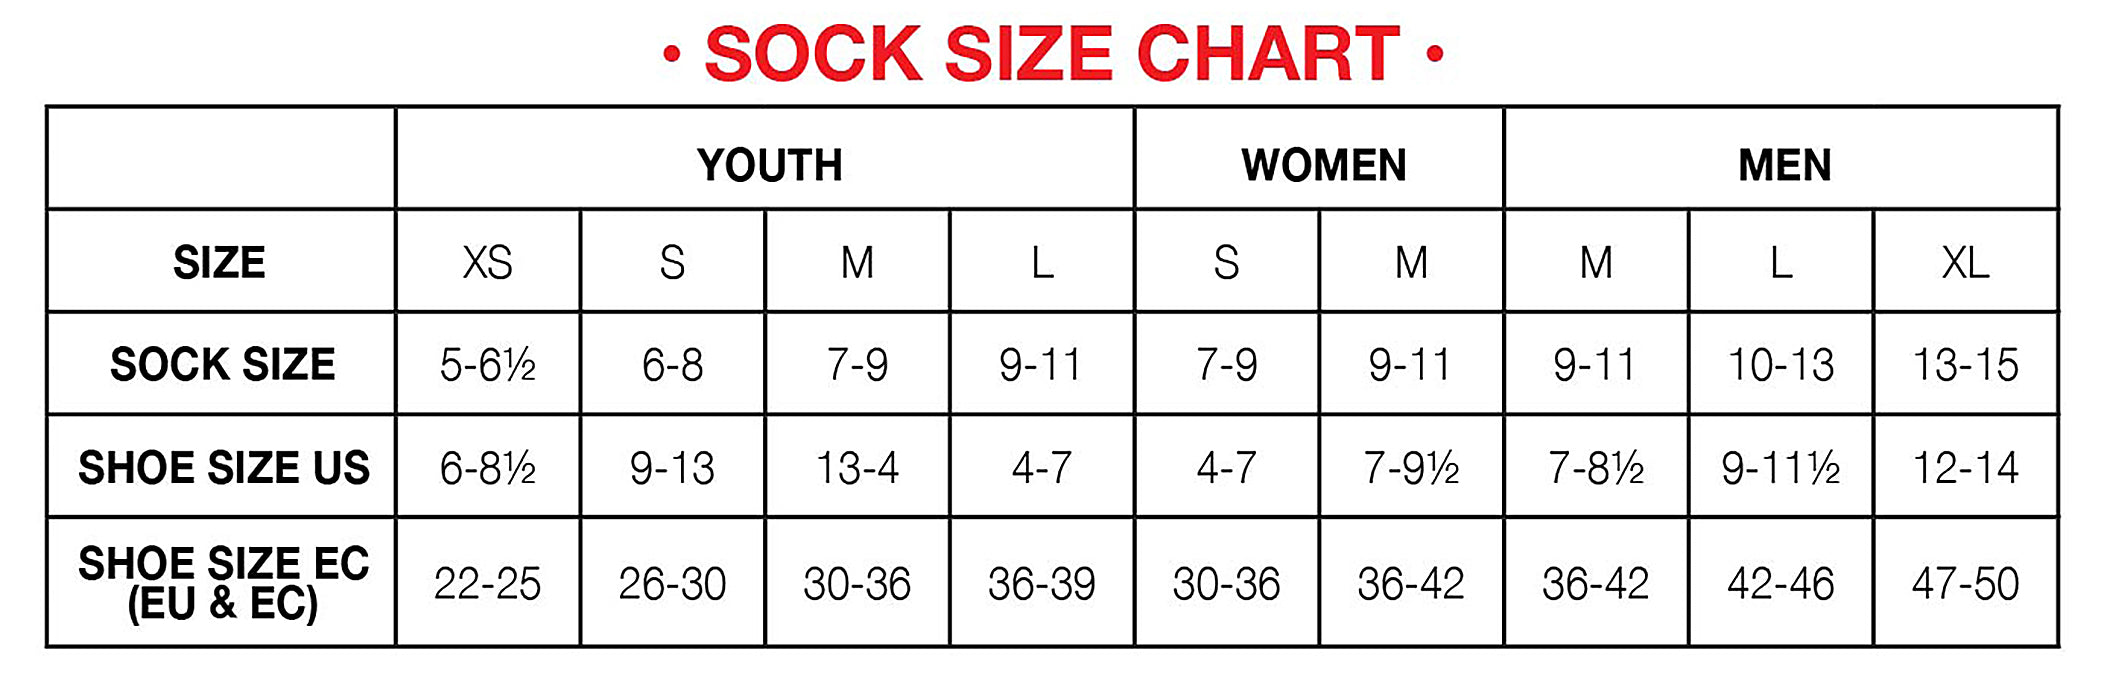 Hot Chillys Sock Size Chart